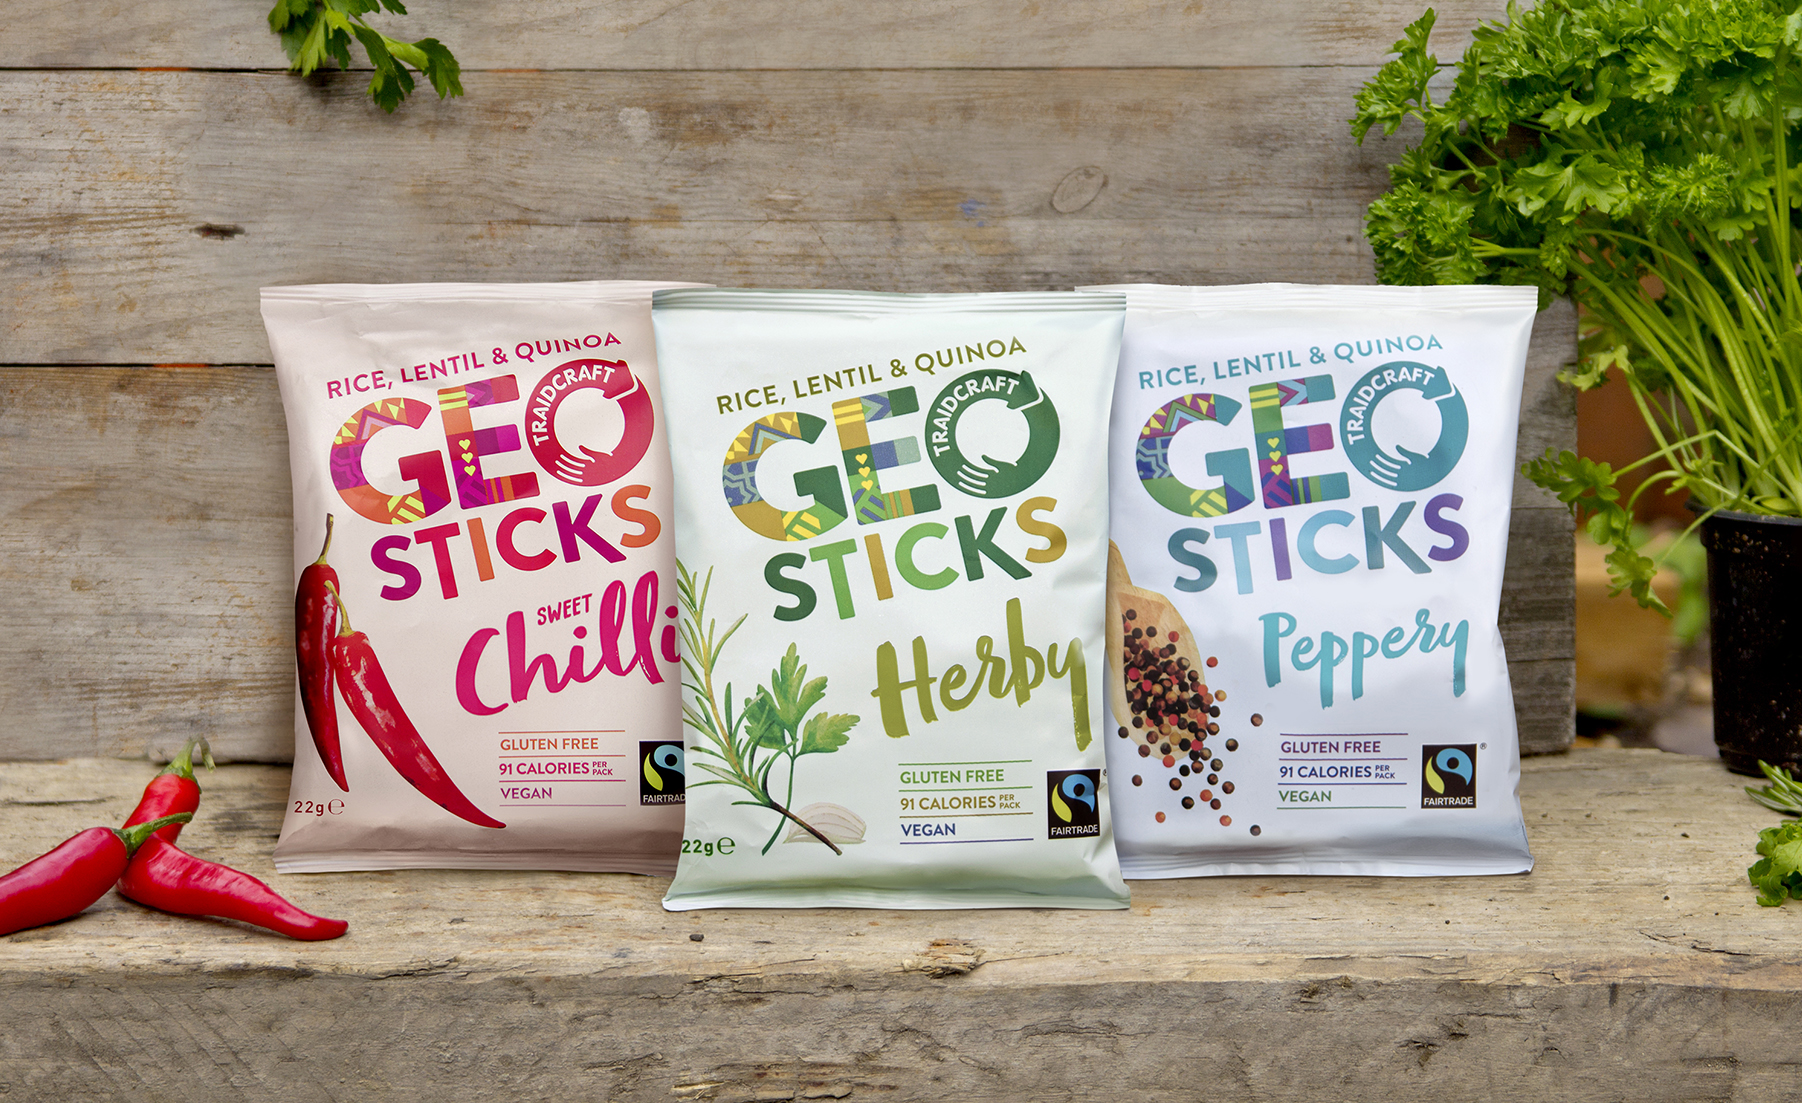 Geosticks_3xPacks_AJ_01_240dpi_high_NO_TAGLINE_2.jpg